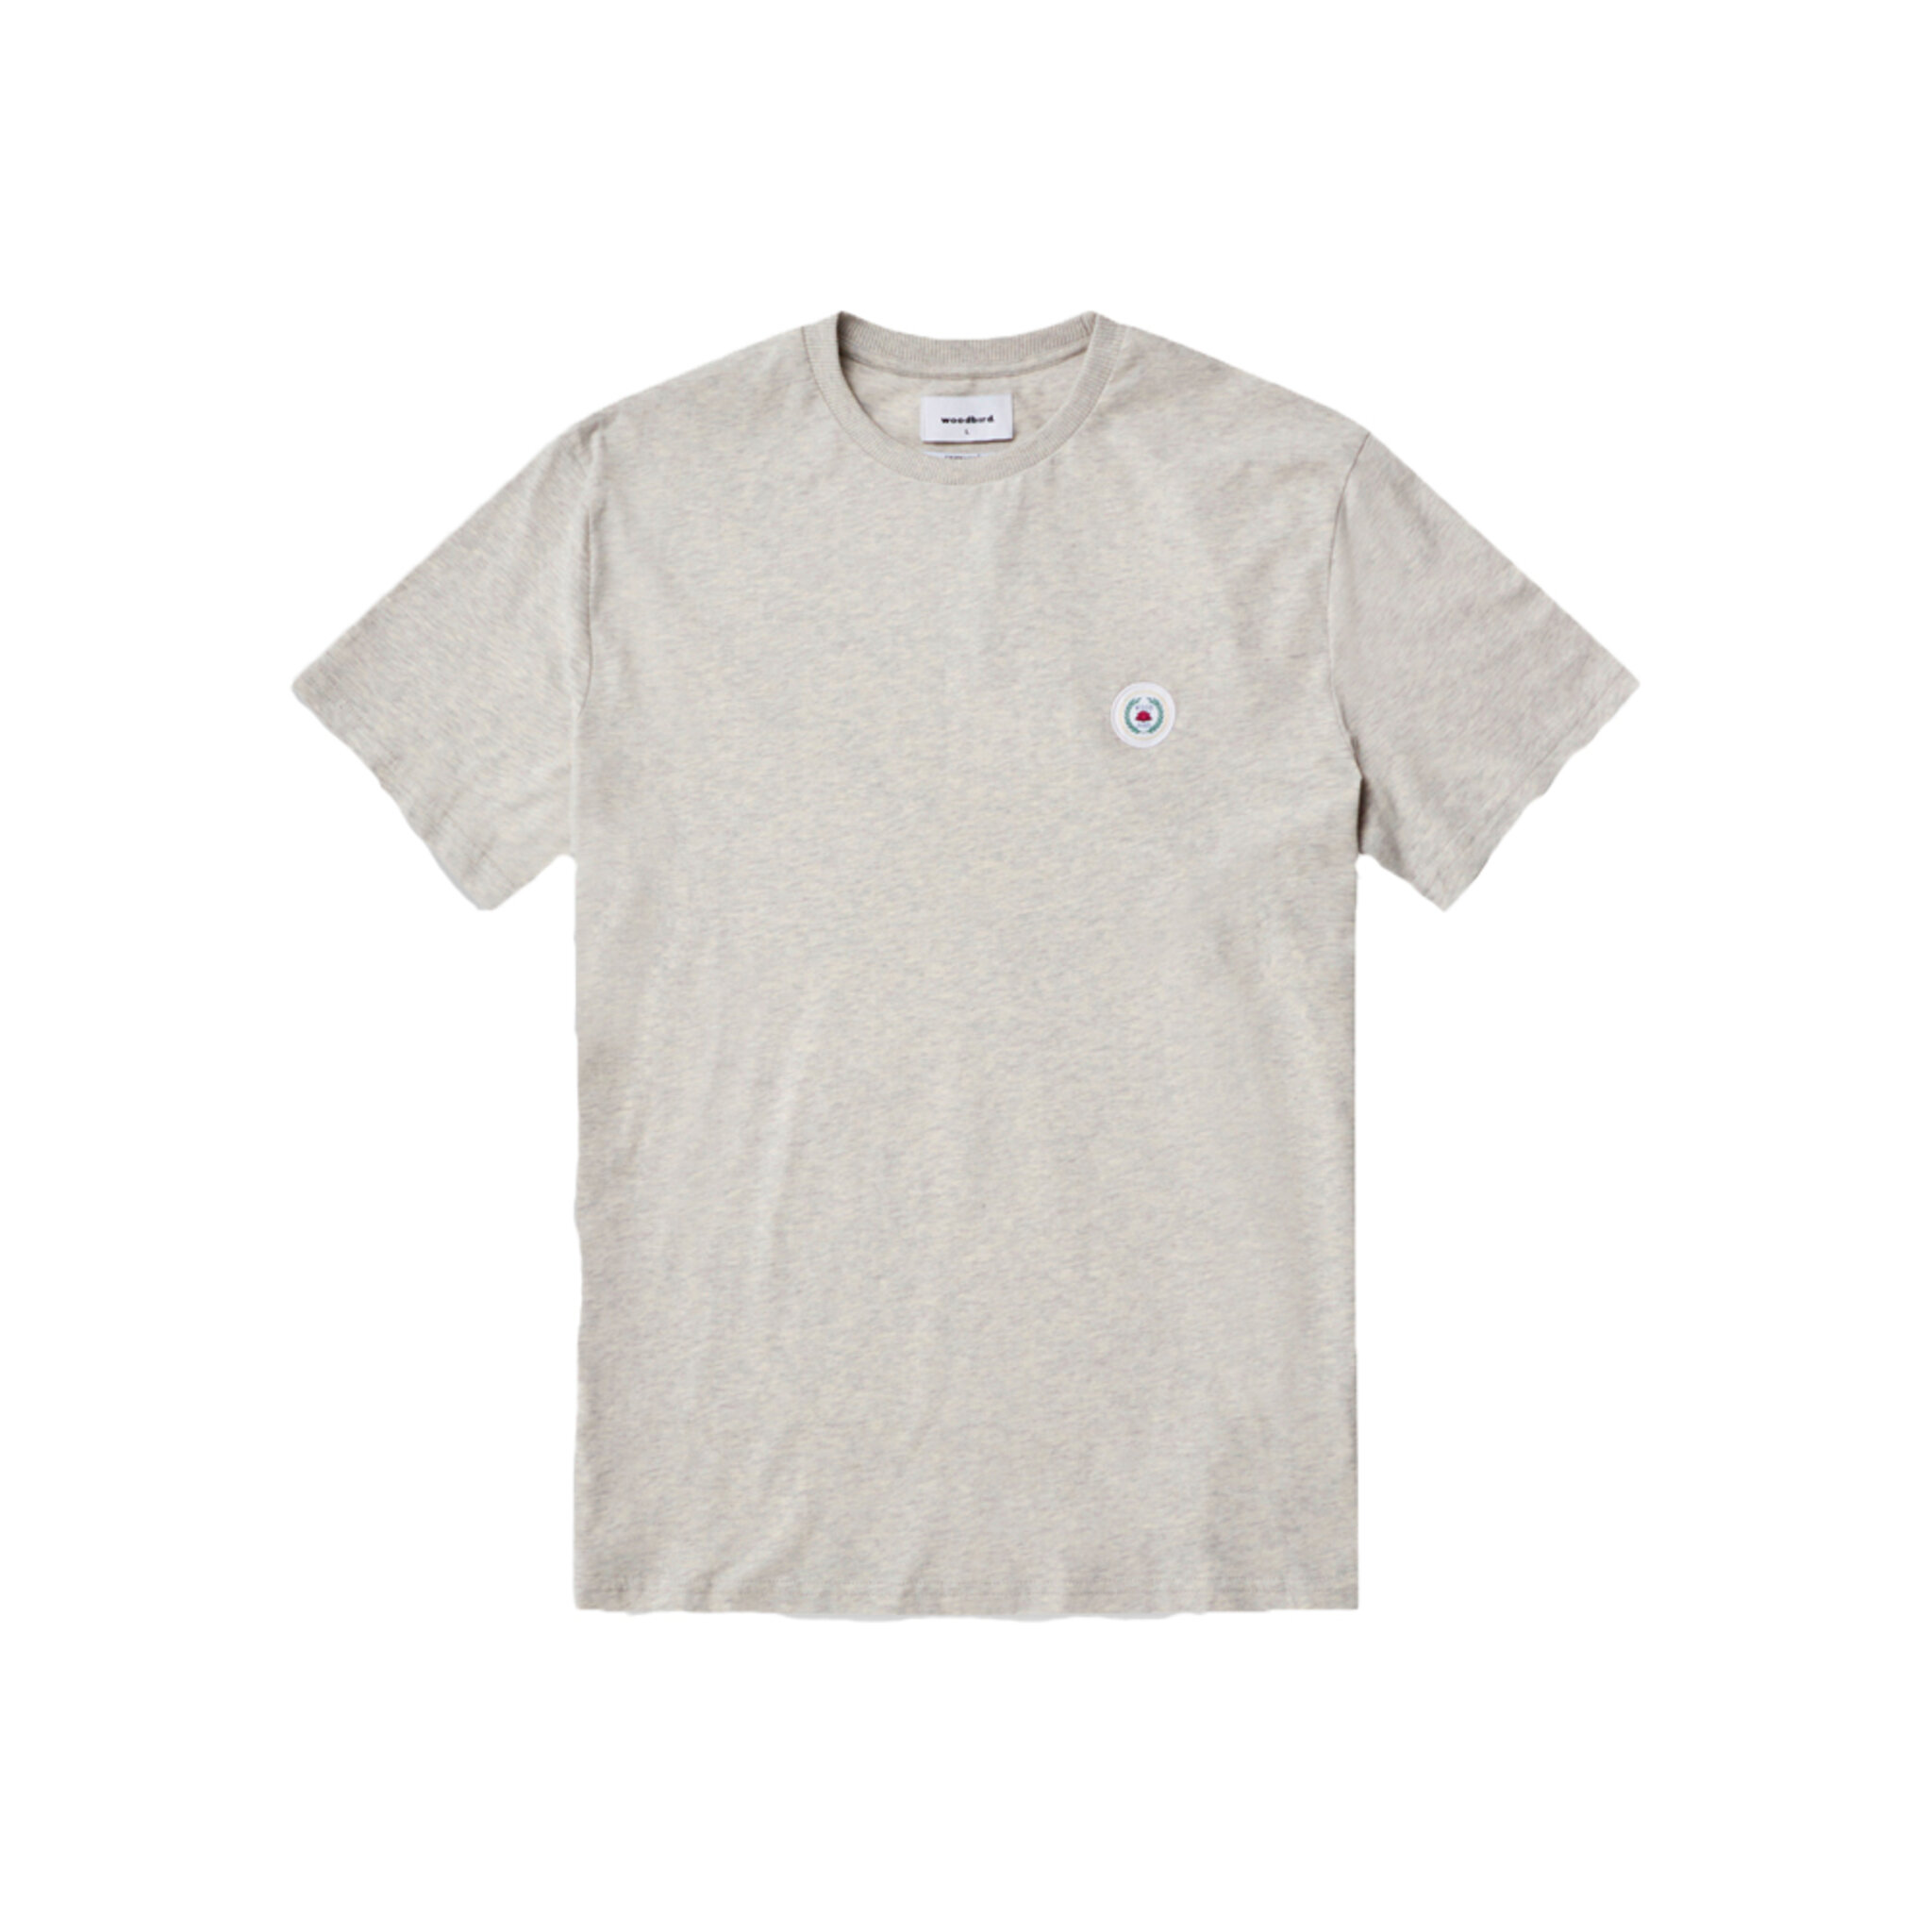 Our Jarvis Patch Snow Tee